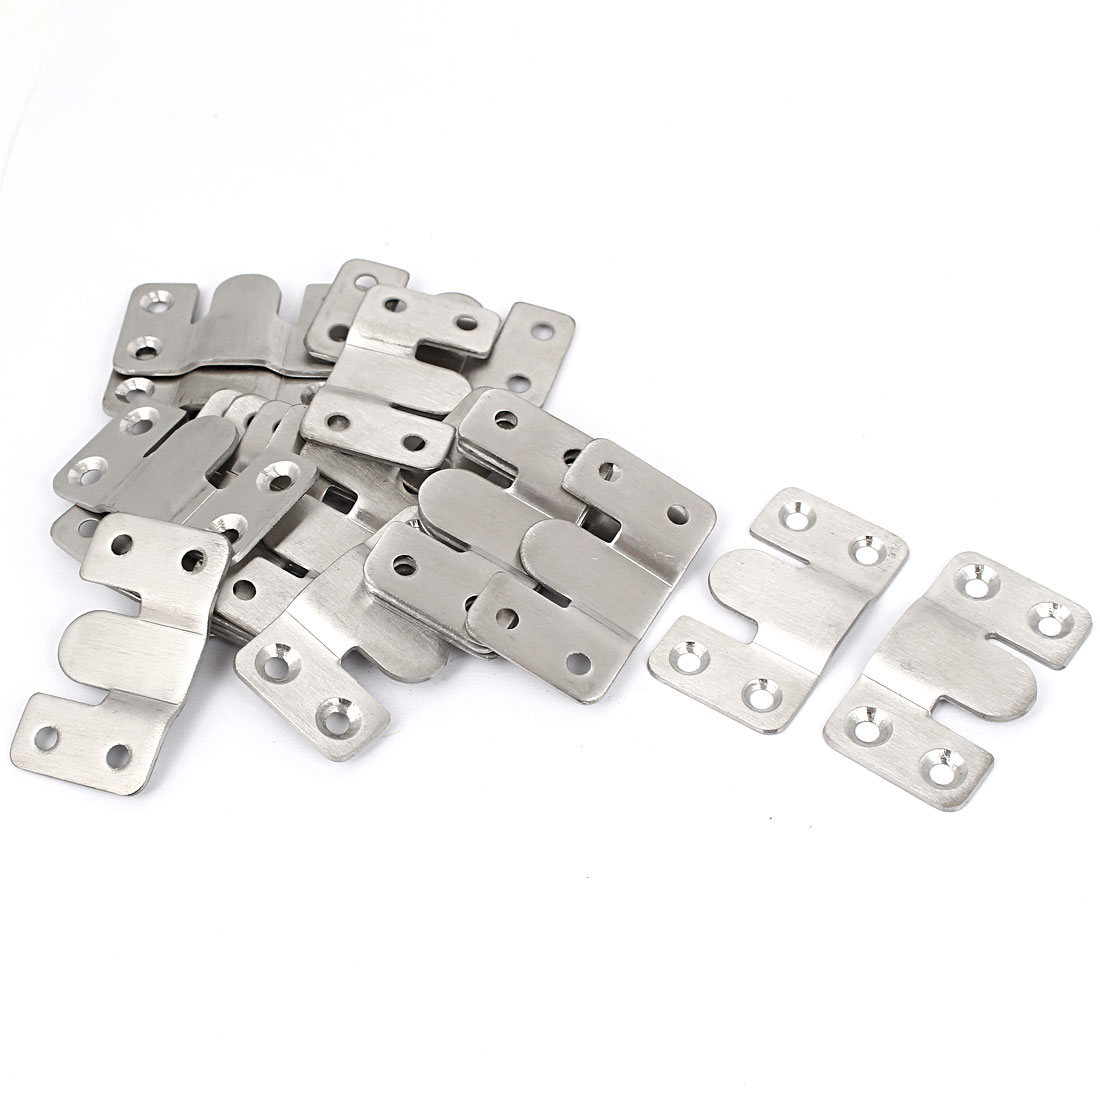 Sofa Photo Frame Interlock Bracket Joint Connector Hanging Hook 53x30mm 20pcs